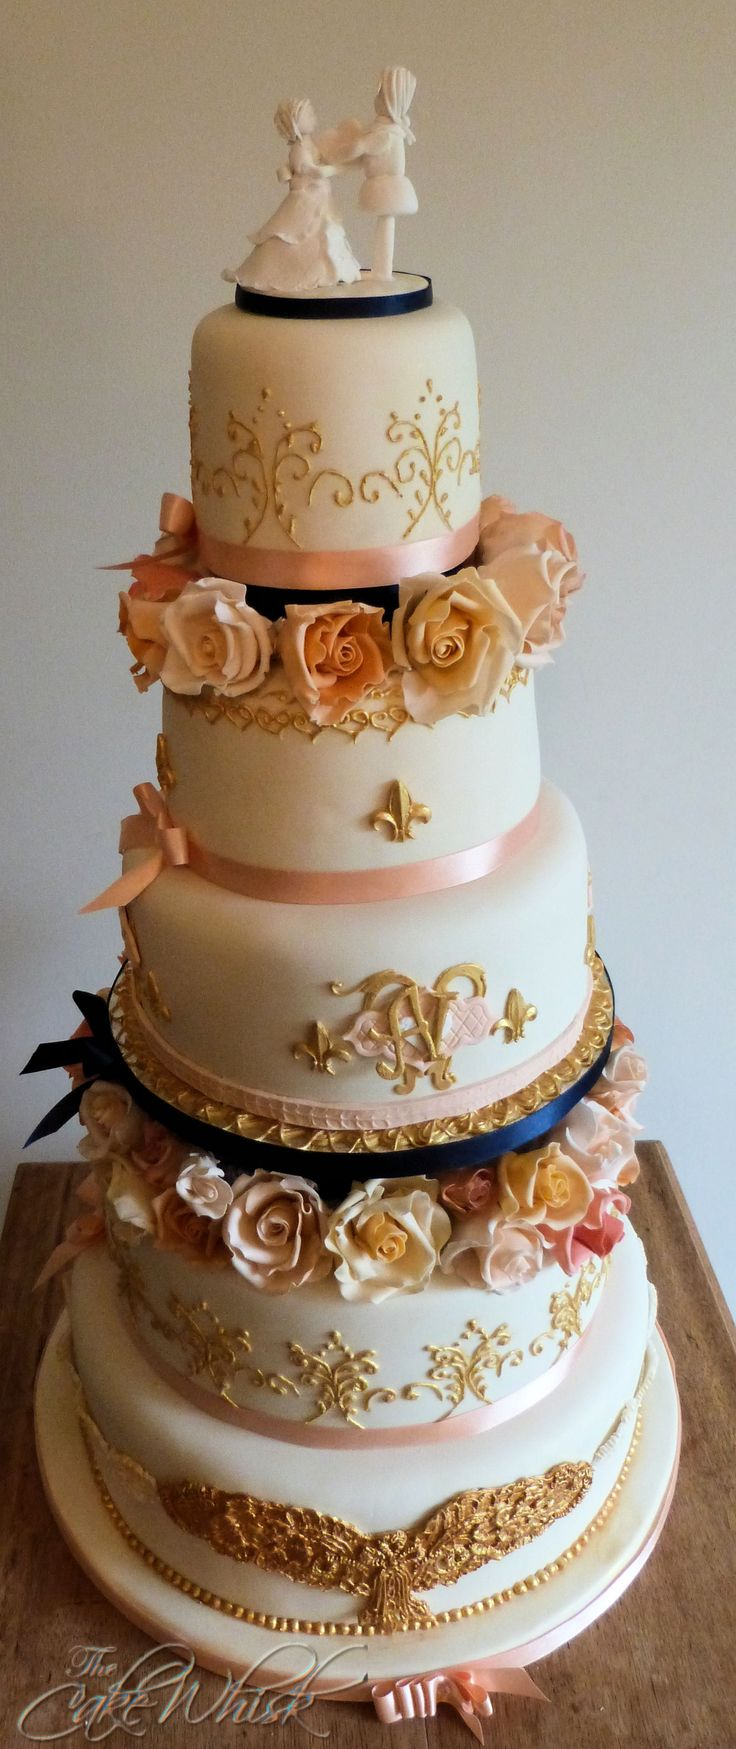 A 5 Tier Rich Fruit Cake In The Baroque Style White Marie Antoinette Topper Was Made For Keepsake As Were Hand Crafted Sugar Roses